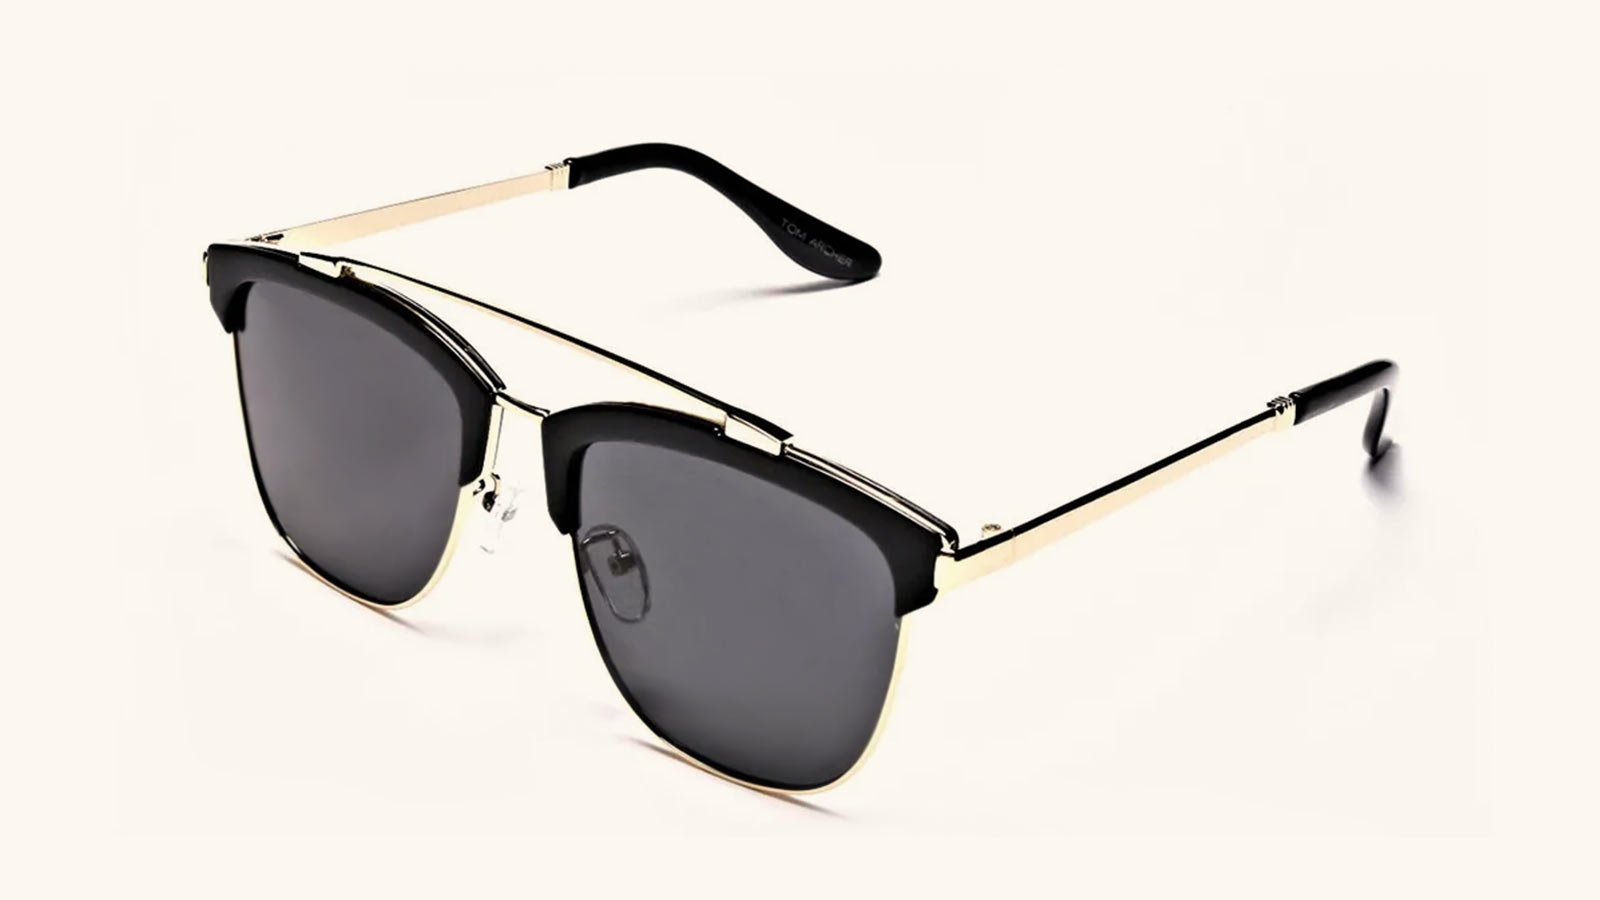 Browline aviator sunglasses for travel